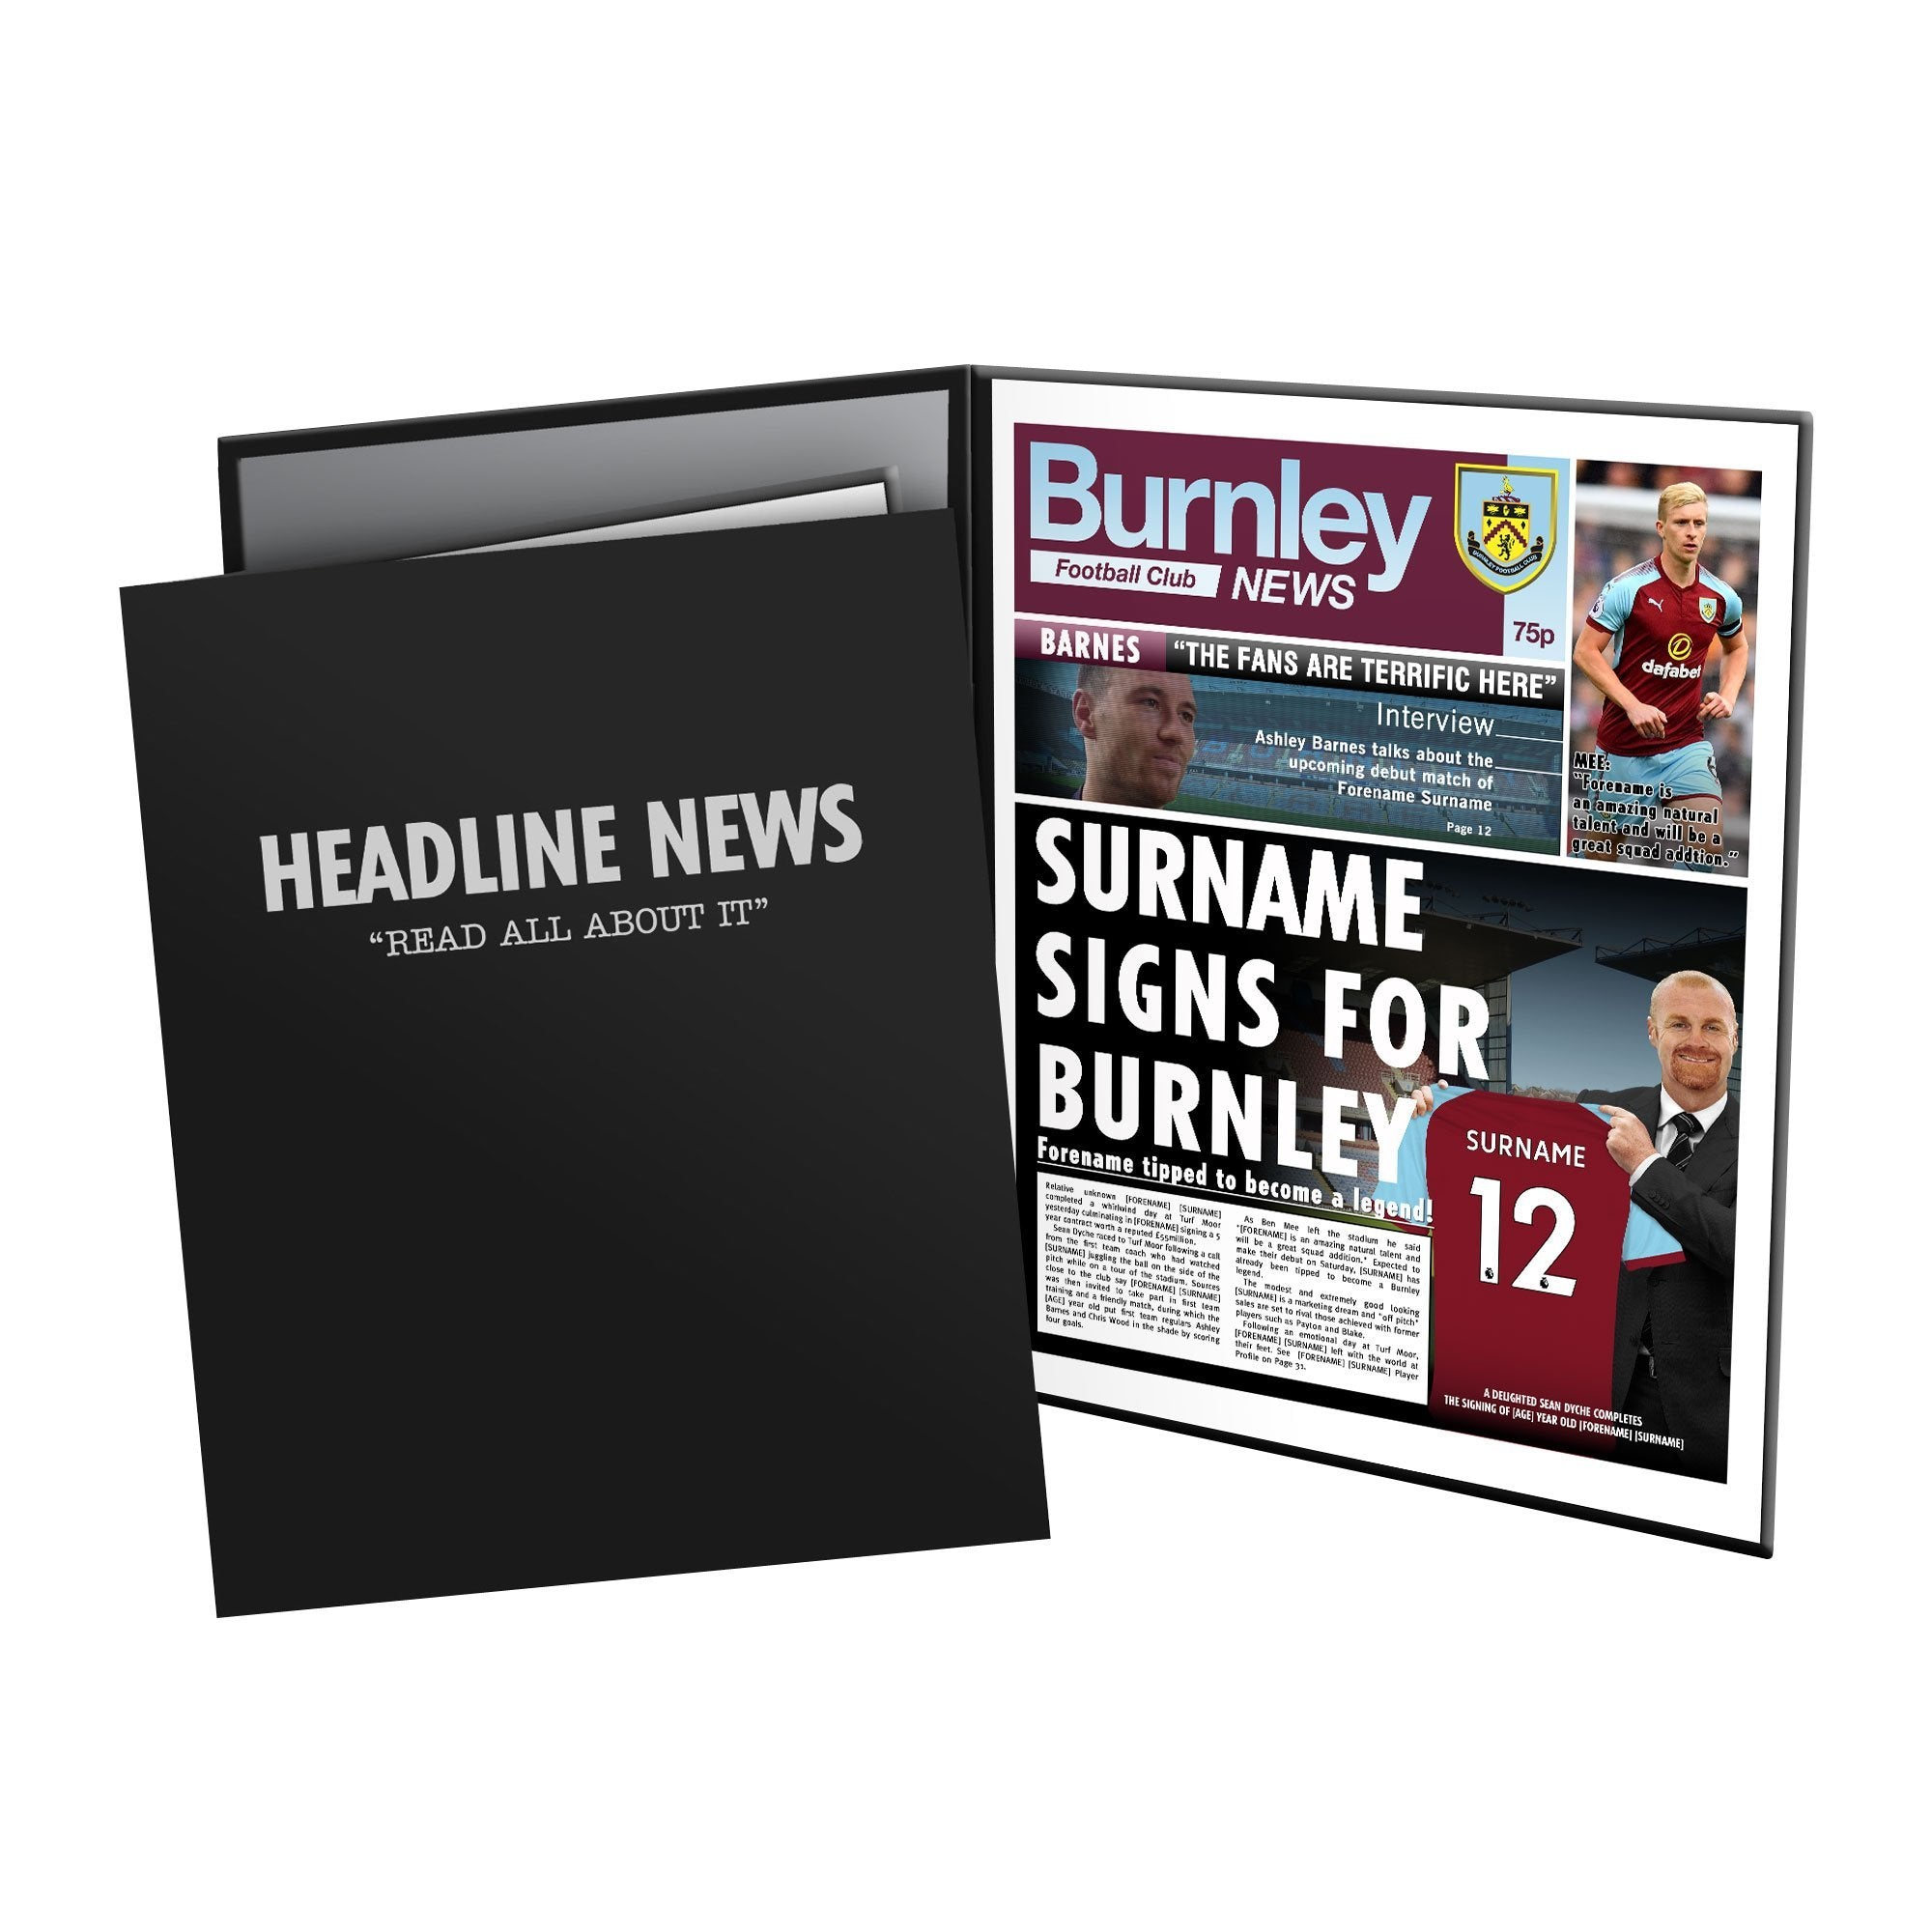 Personalised Burnley FC News Page In Presentation Folder, Football Fan Accessories by Glamorous Gifts